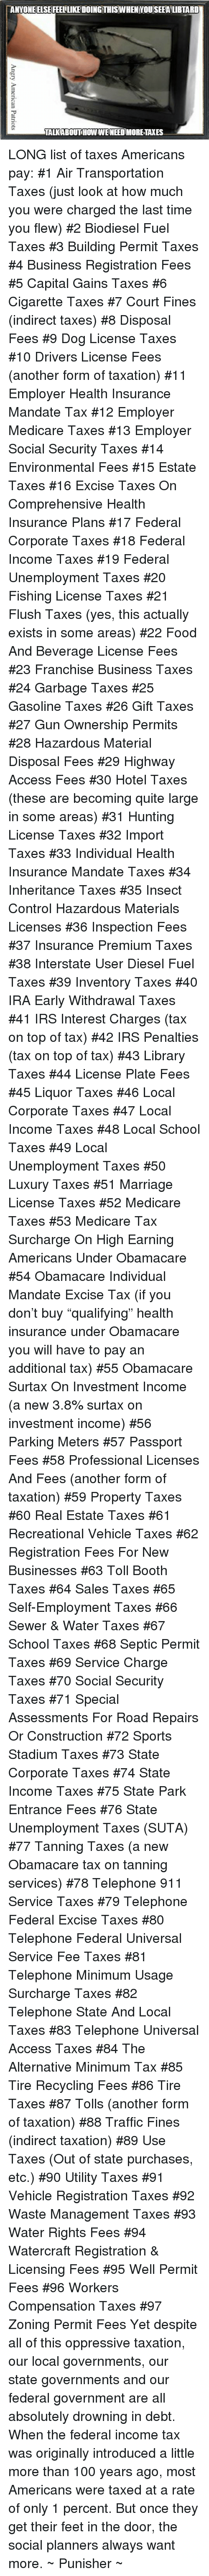 """Anaconda, Food, and Irs: TANYONEELSEFEELLIKEHDOINGTHISWHEN YOU SEEALBTARD  TALKABOUT HOWWENEEDMORE TAXES LONG list of taxes Americans pay:  #1 Air Transportation Taxes (just look at how much you were charged the last time you flew)  #2 Biodiesel Fuel Taxes  #3 Building Permit Taxes  #4 Business Registration Fees  #5 Capital Gains Taxes  #6 Cigarette Taxes  #7 Court Fines (indirect taxes)  #8 Disposal Fees  #9 Dog License Taxes  #10 Drivers License Fees (another form of taxation)  #11 Employer Health Insurance Mandate Tax  #12 Employer Medicare Taxes  #13 Employer Social Security Taxes  #14 Environmental Fees  #15 Estate Taxes  #16 Excise Taxes On Comprehensive Health Insurance Plans  #17 Federal Corporate Taxes  #18 Federal Income Taxes  #19 Federal Unemployment Taxes  #20 Fishing License Taxes  #21 Flush Taxes (yes, this actually exists in some areas)  #22 Food And Beverage License Fees  #23 Franchise Business Taxes  #24 Garbage Taxes  #25 Gasoline Taxes  #26 Gift Taxes  #27 Gun Ownership Permits  #28 Hazardous Material Disposal Fees  #29 Highway Access Fees  #30 Hotel Taxes (these are becoming quite large in some areas)  #31 Hunting License Taxes  #32 Import Taxes  #33 Individual Health Insurance Mandate Taxes  #34 Inheritance Taxes  #35 Insect Control Hazardous Materials Licenses  #36 Inspection Fees  #37 Insurance Premium Taxes  #38 Interstate User Diesel Fuel Taxes  #39 Inventory Taxes  #40 IRA Early Withdrawal Taxes  #41 IRS Interest Charges (tax on top of tax)  #42 IRS Penalties (tax on top of tax)  #43 Library Taxes  #44 License Plate Fees  #45 Liquor Taxes  #46 Local Corporate Taxes  #47 Local Income Taxes  #48 Local School Taxes  #49 Local Unemployment Taxes  #50 Luxury Taxes  #51 Marriage License Taxes  #52 Medicare Taxes  #53 Medicare Tax Surcharge On High Earning Americans Under Obamacare  #54 Obamacare Individual Mandate Excise Tax (if you don't buy """"qualifying"""" health insurance under Obamacare you will have to pay an additional tax)  #55 Obamacare Sur"""